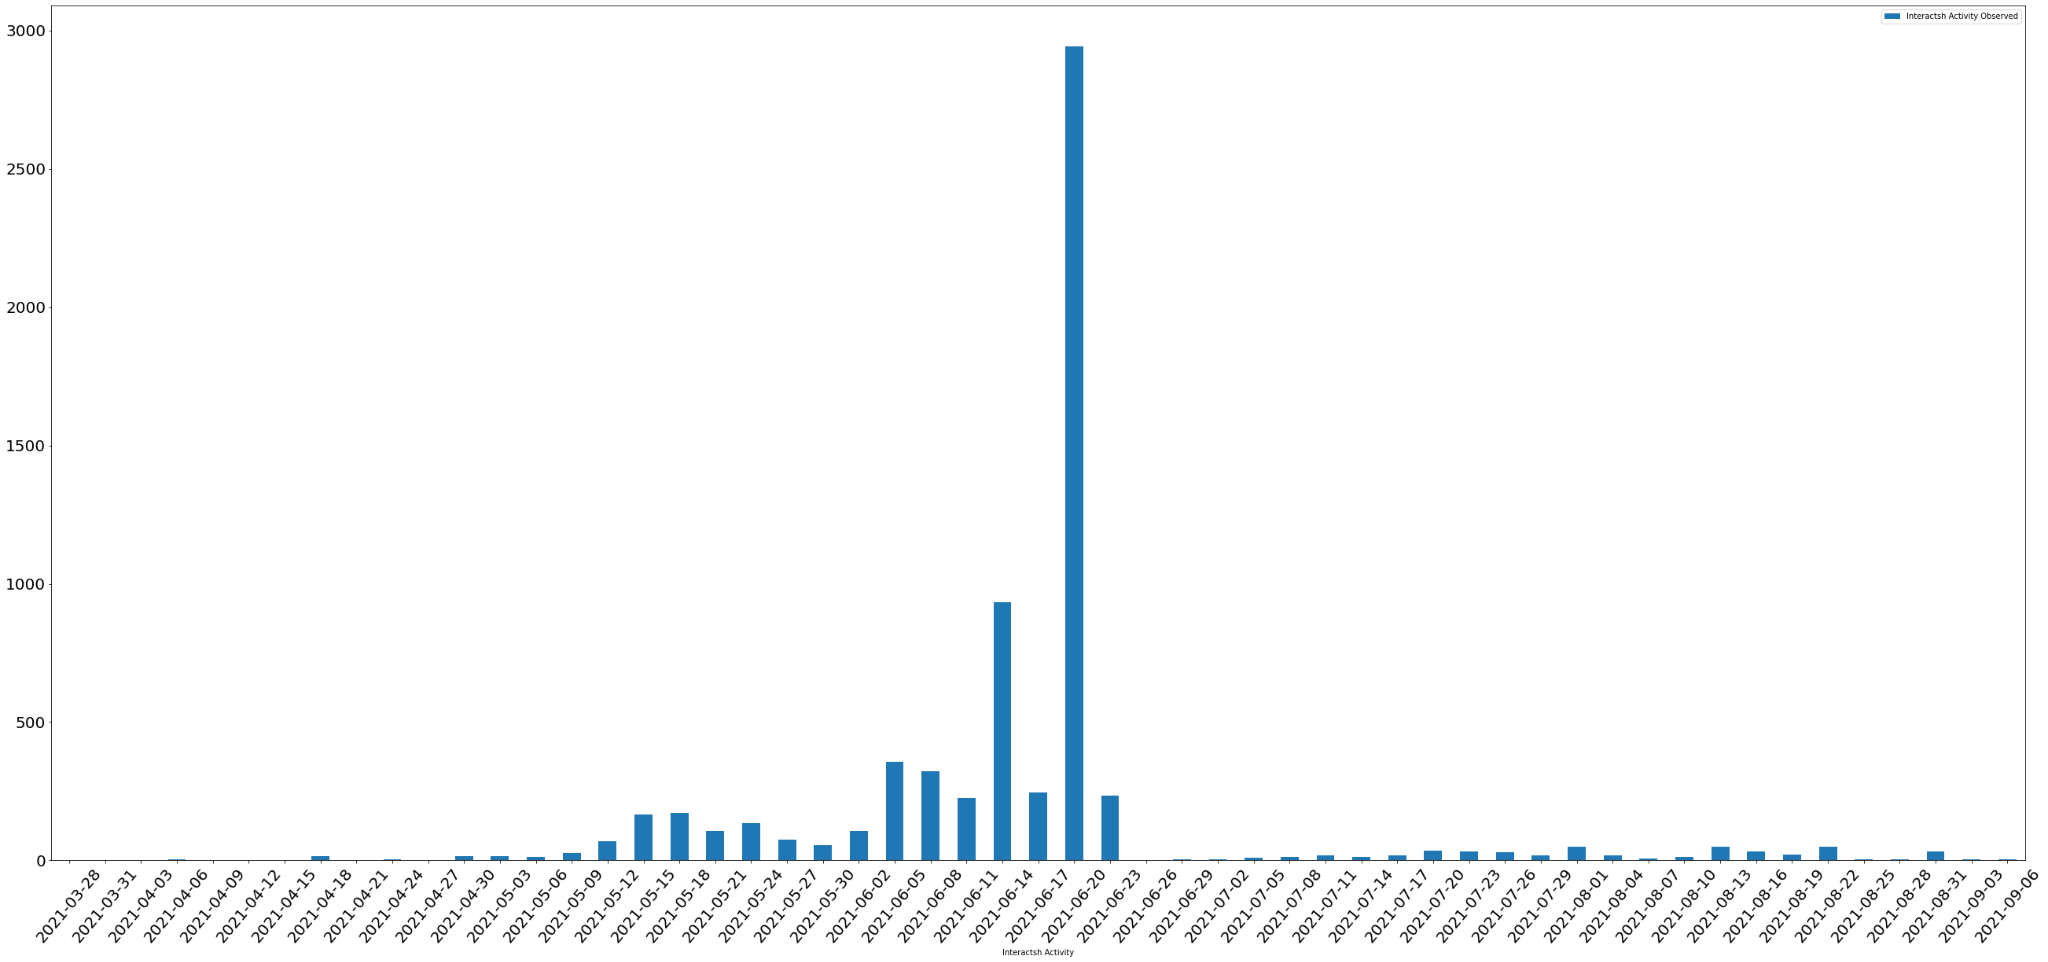 Exploits observed that used the Interactsh tool, starting from the time it went public in April, charted in terms of more granular date ranges.